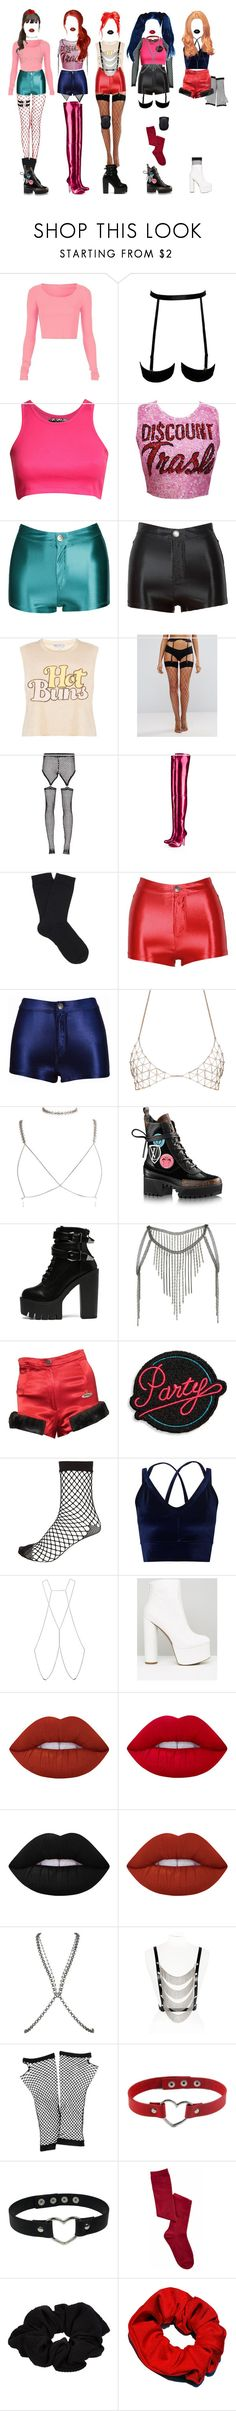 """""""- debut concept : MY LOVE"""" by xxeucliffexx ❤ liked on Polyvore featuring Pilot, Di$count Universe, Wildfox, Ann Summers, Bohemian Society, Christian Louboutin, Falke, Luv Aj, Topshop and Vivienne Westwood"""